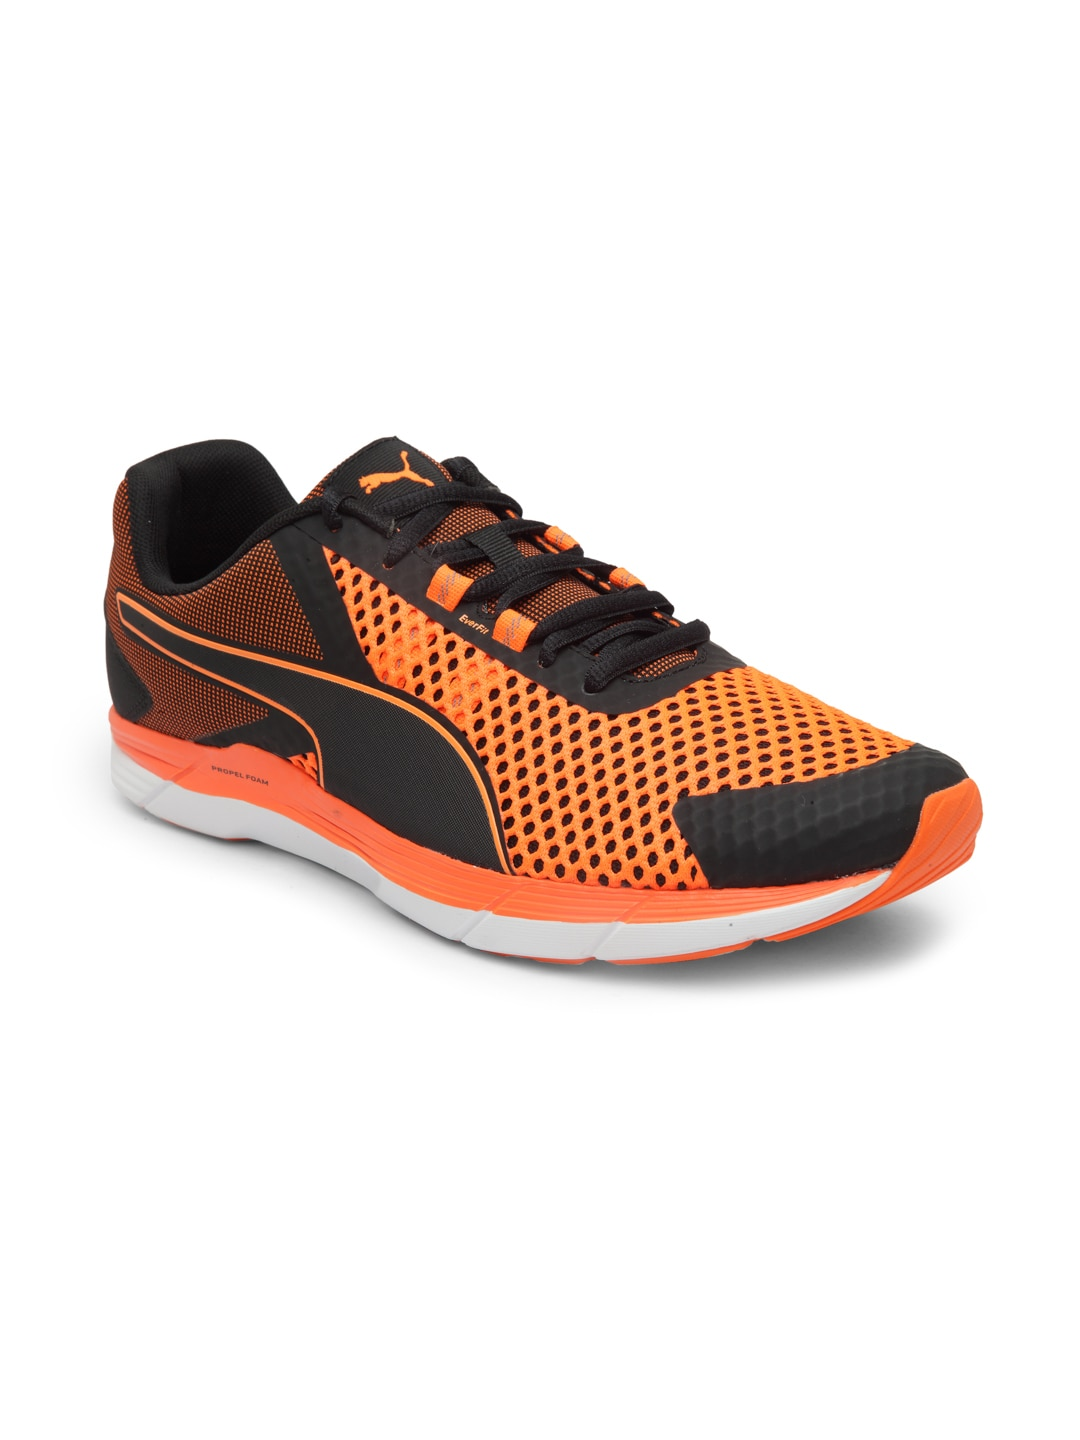 7042dd7677f4 Puma Shoes - Buy Puma Shoes for Men   Women Online in India